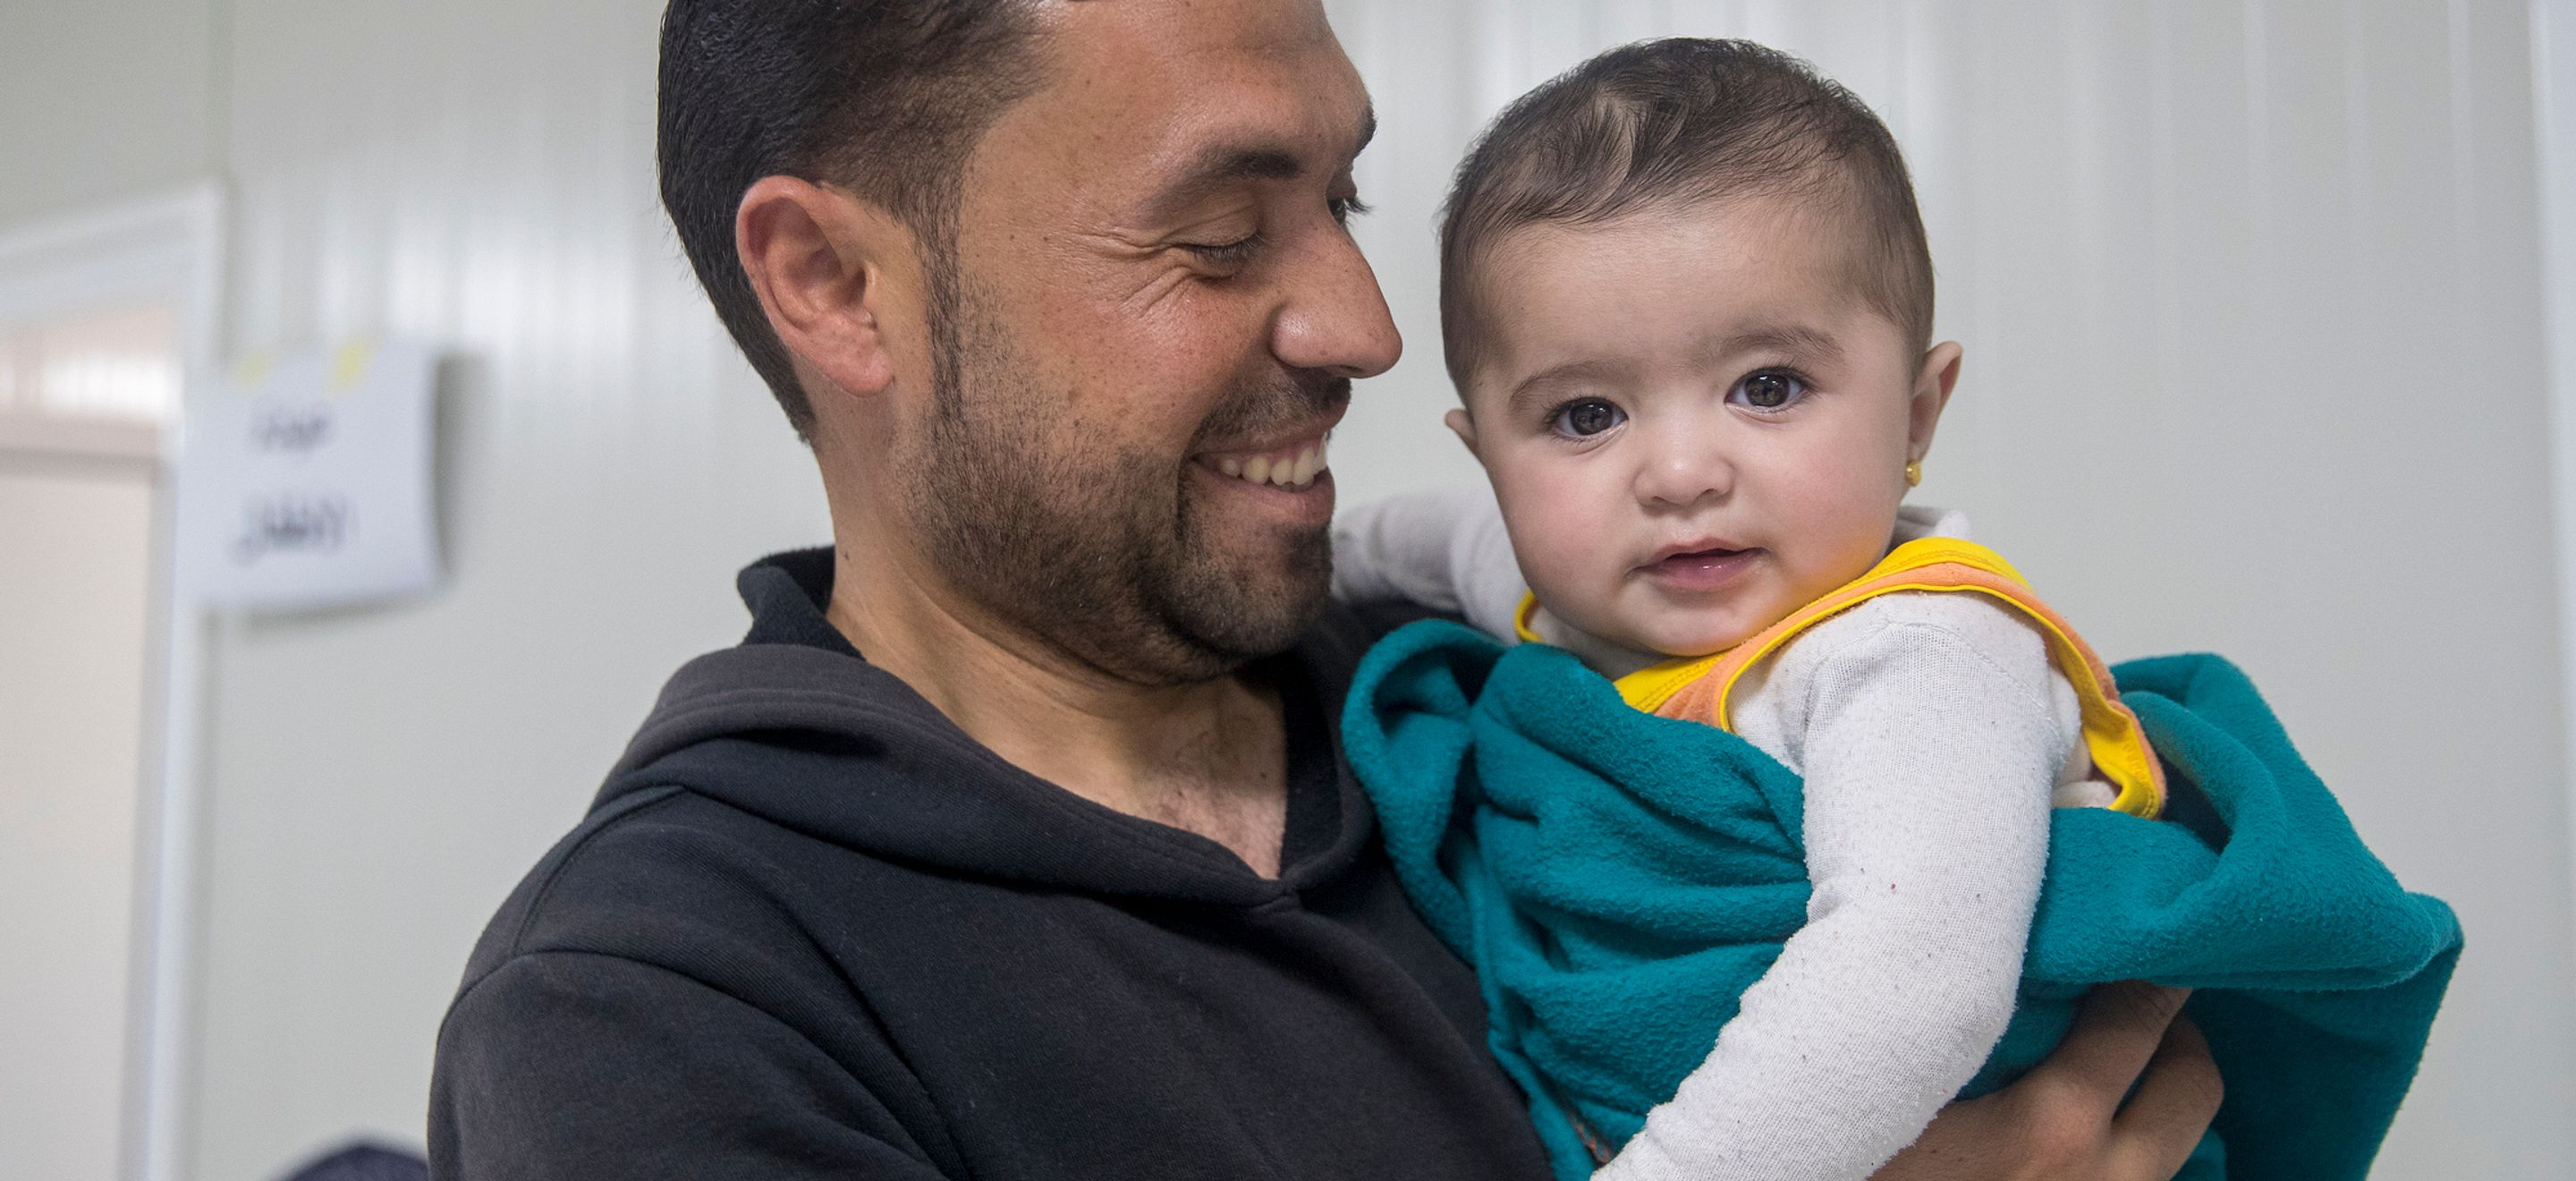 A Syrian father holds his infant daughter in the waiting area of a medical clinic in a Jordanian refugee camp. The father wears a black hooded sweatshirt and the child wears a long sleeve white shirt and is wrapped in a teal fleece blanket.